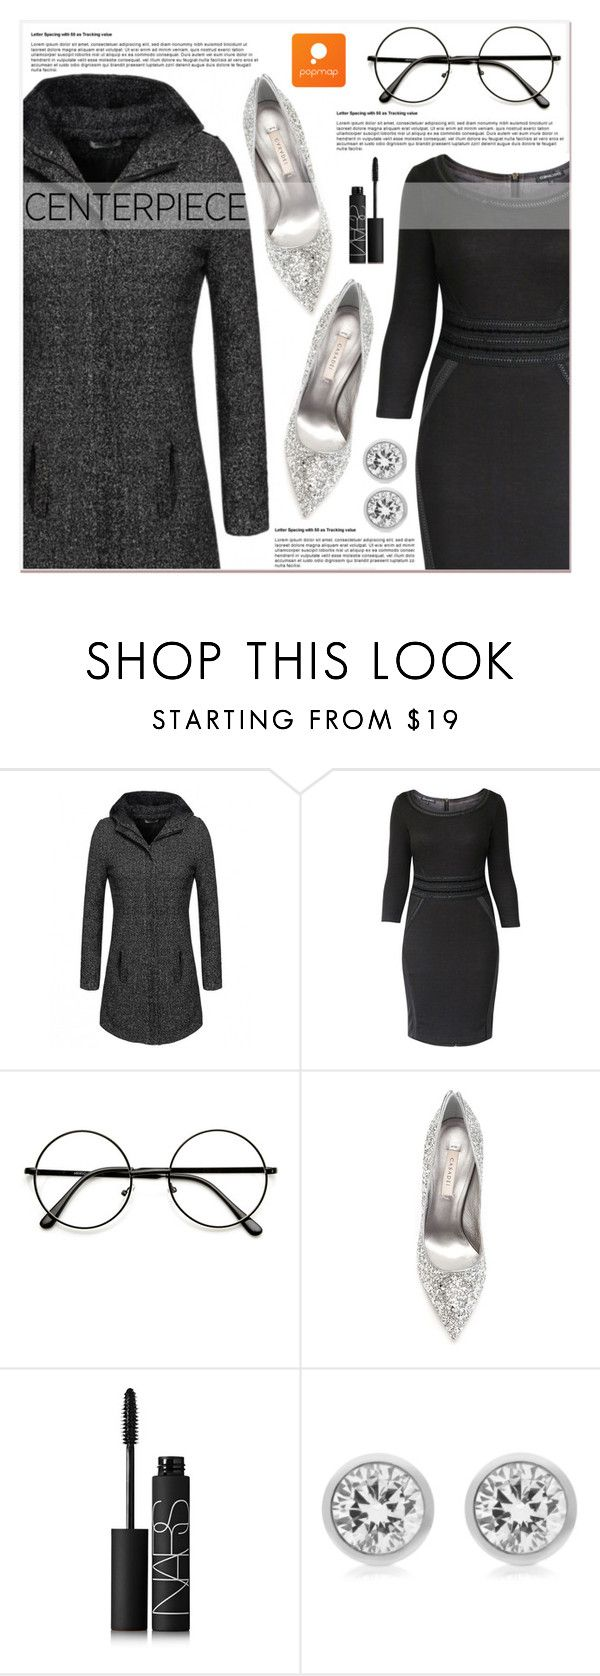 """""""# III/16 Popmap"""" by lucky-1990 ❤ liked on Polyvore featuring Casadei, NARS Cosmetics, Michael Kors, vintage and popmap"""